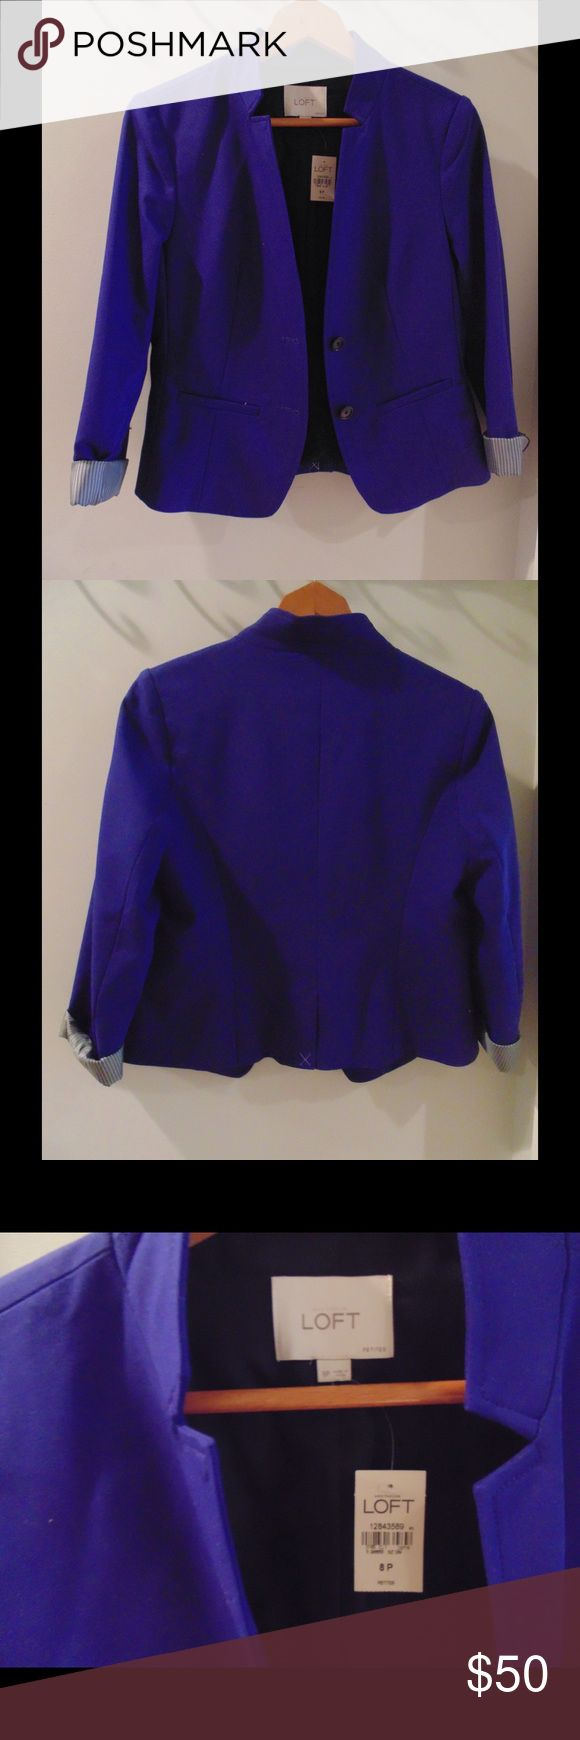 Royal Blue Blazer New with tags - royal blue blazer from Ann Taylor LOFT. LOFT Jackets & Coats Blazers